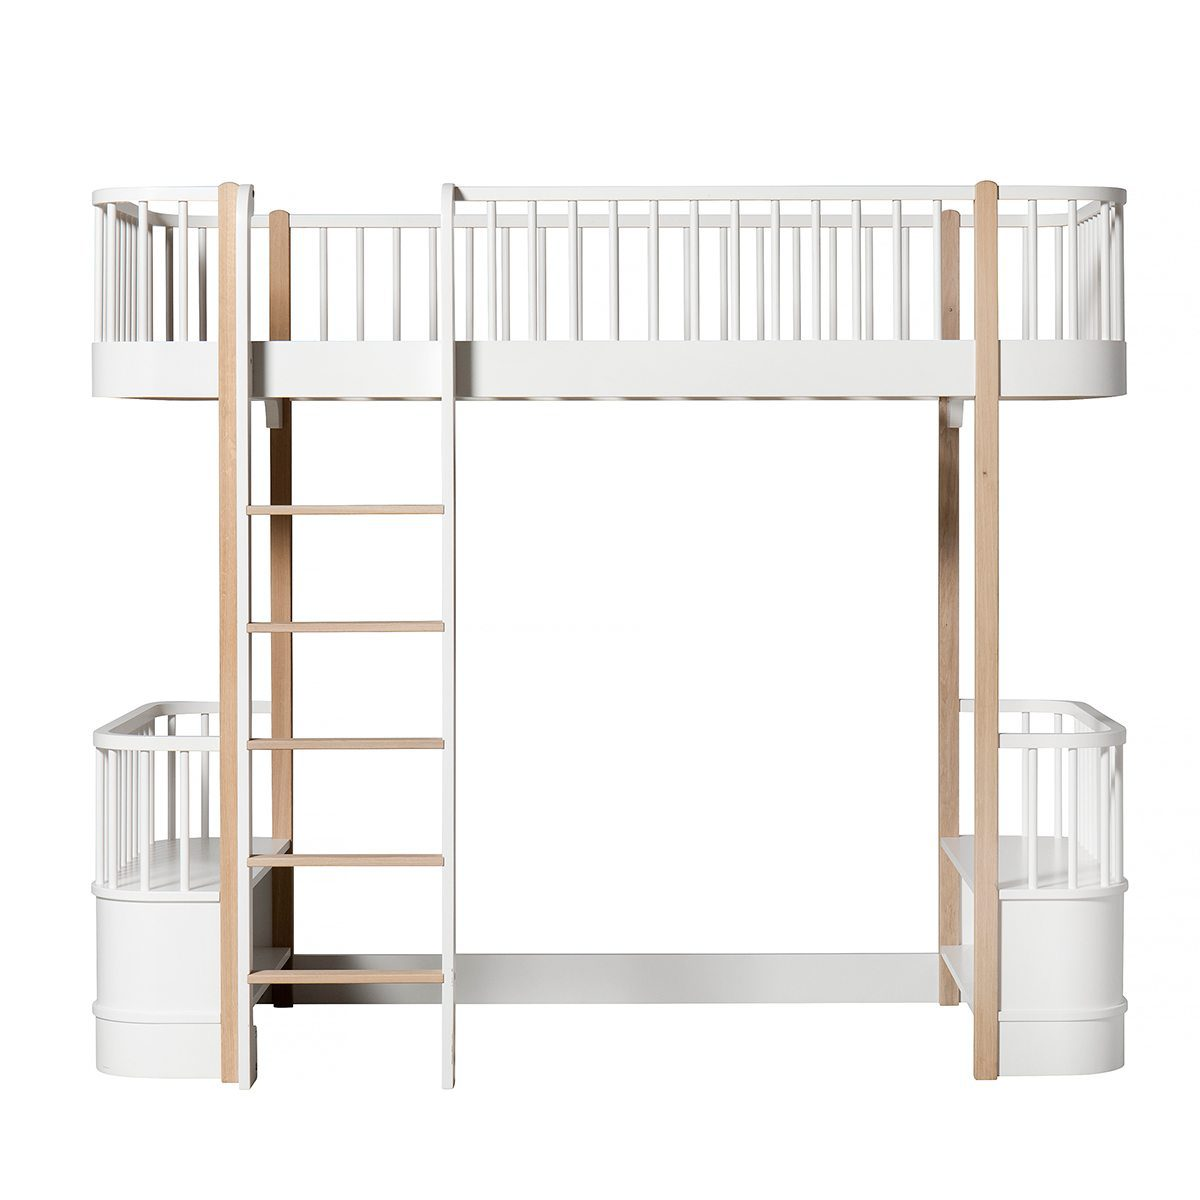 Oliver Furniture Loft bed Wood white oak ladder links voor